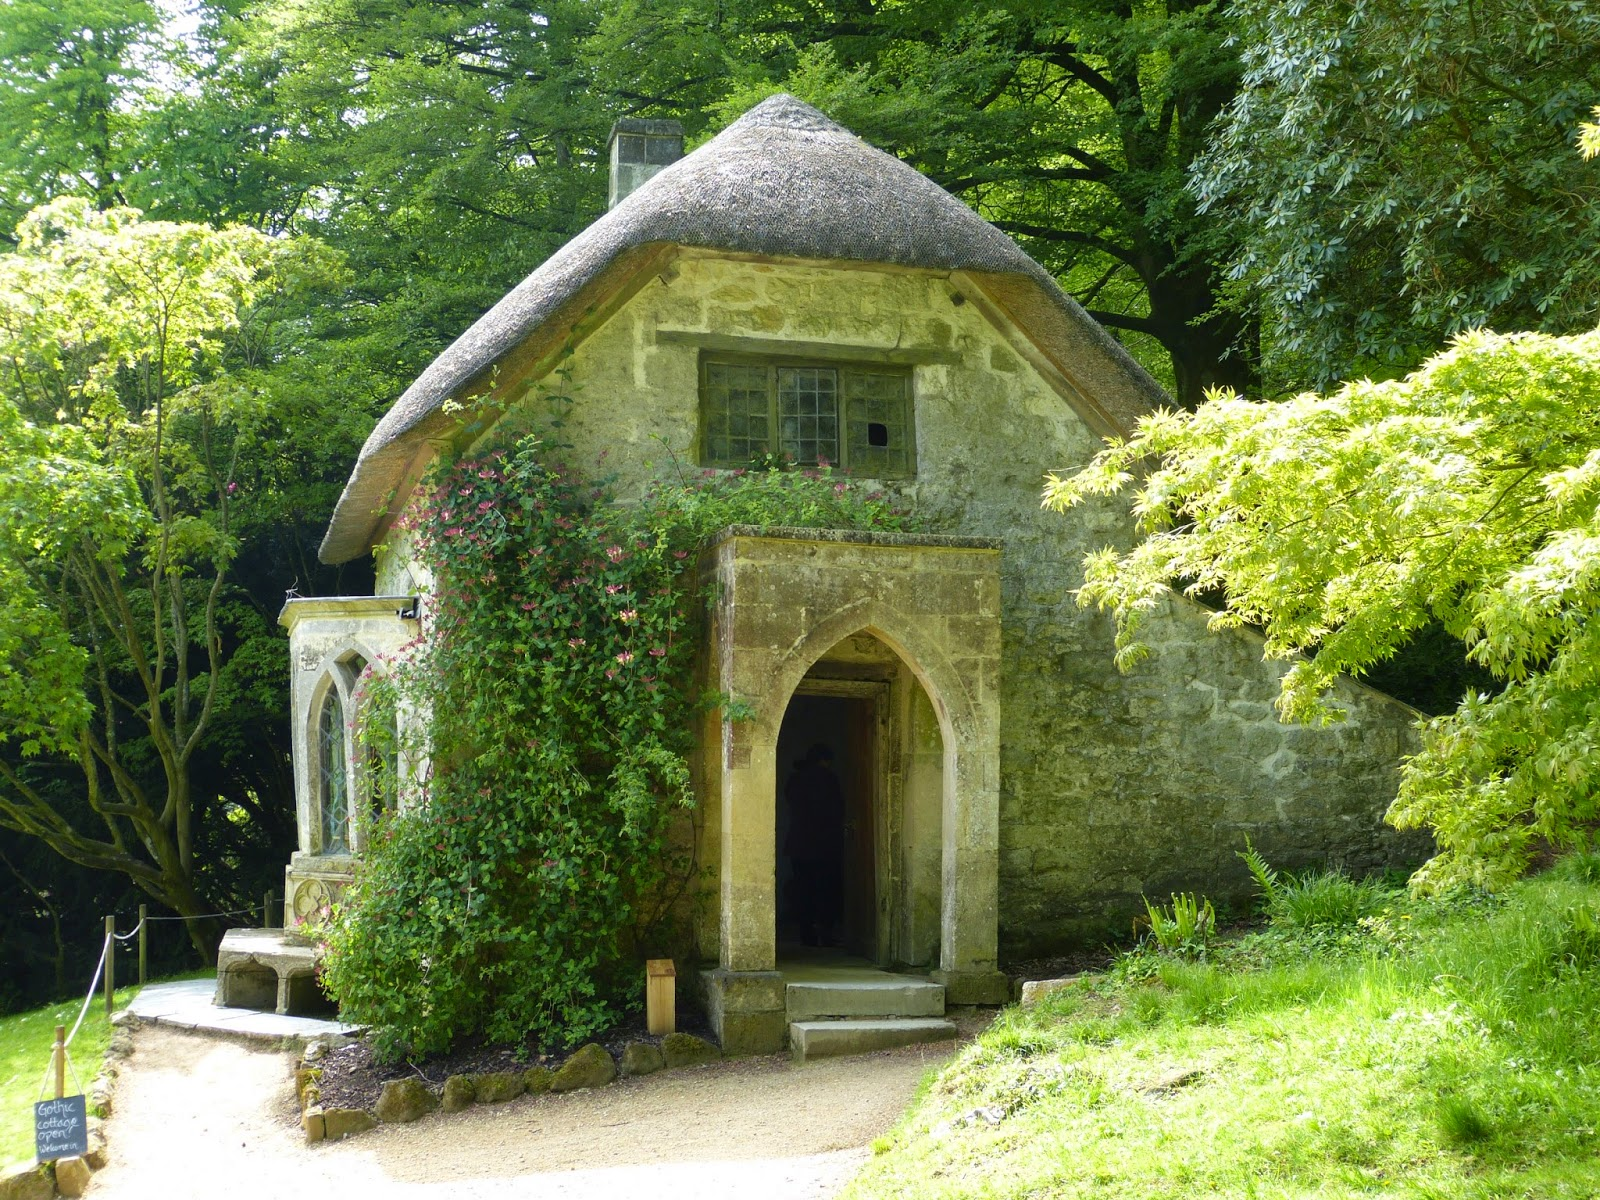 Gothic cottage, Stourhead